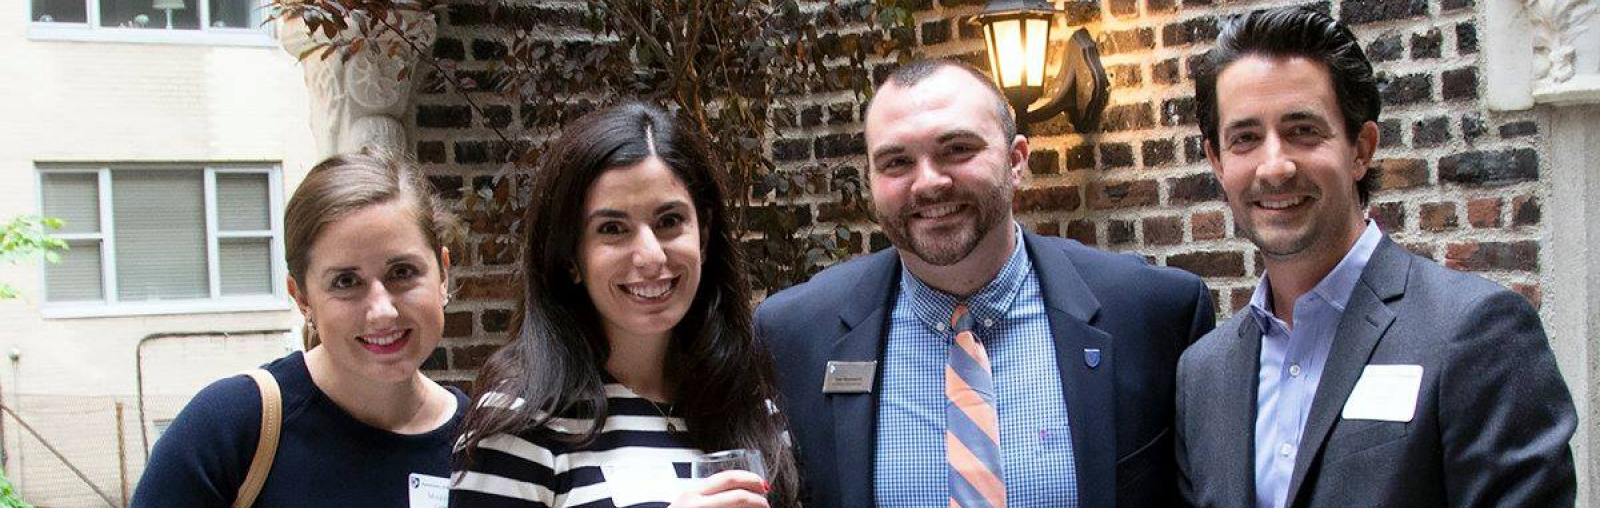 UNH alumni at international event in NYC, May 2016